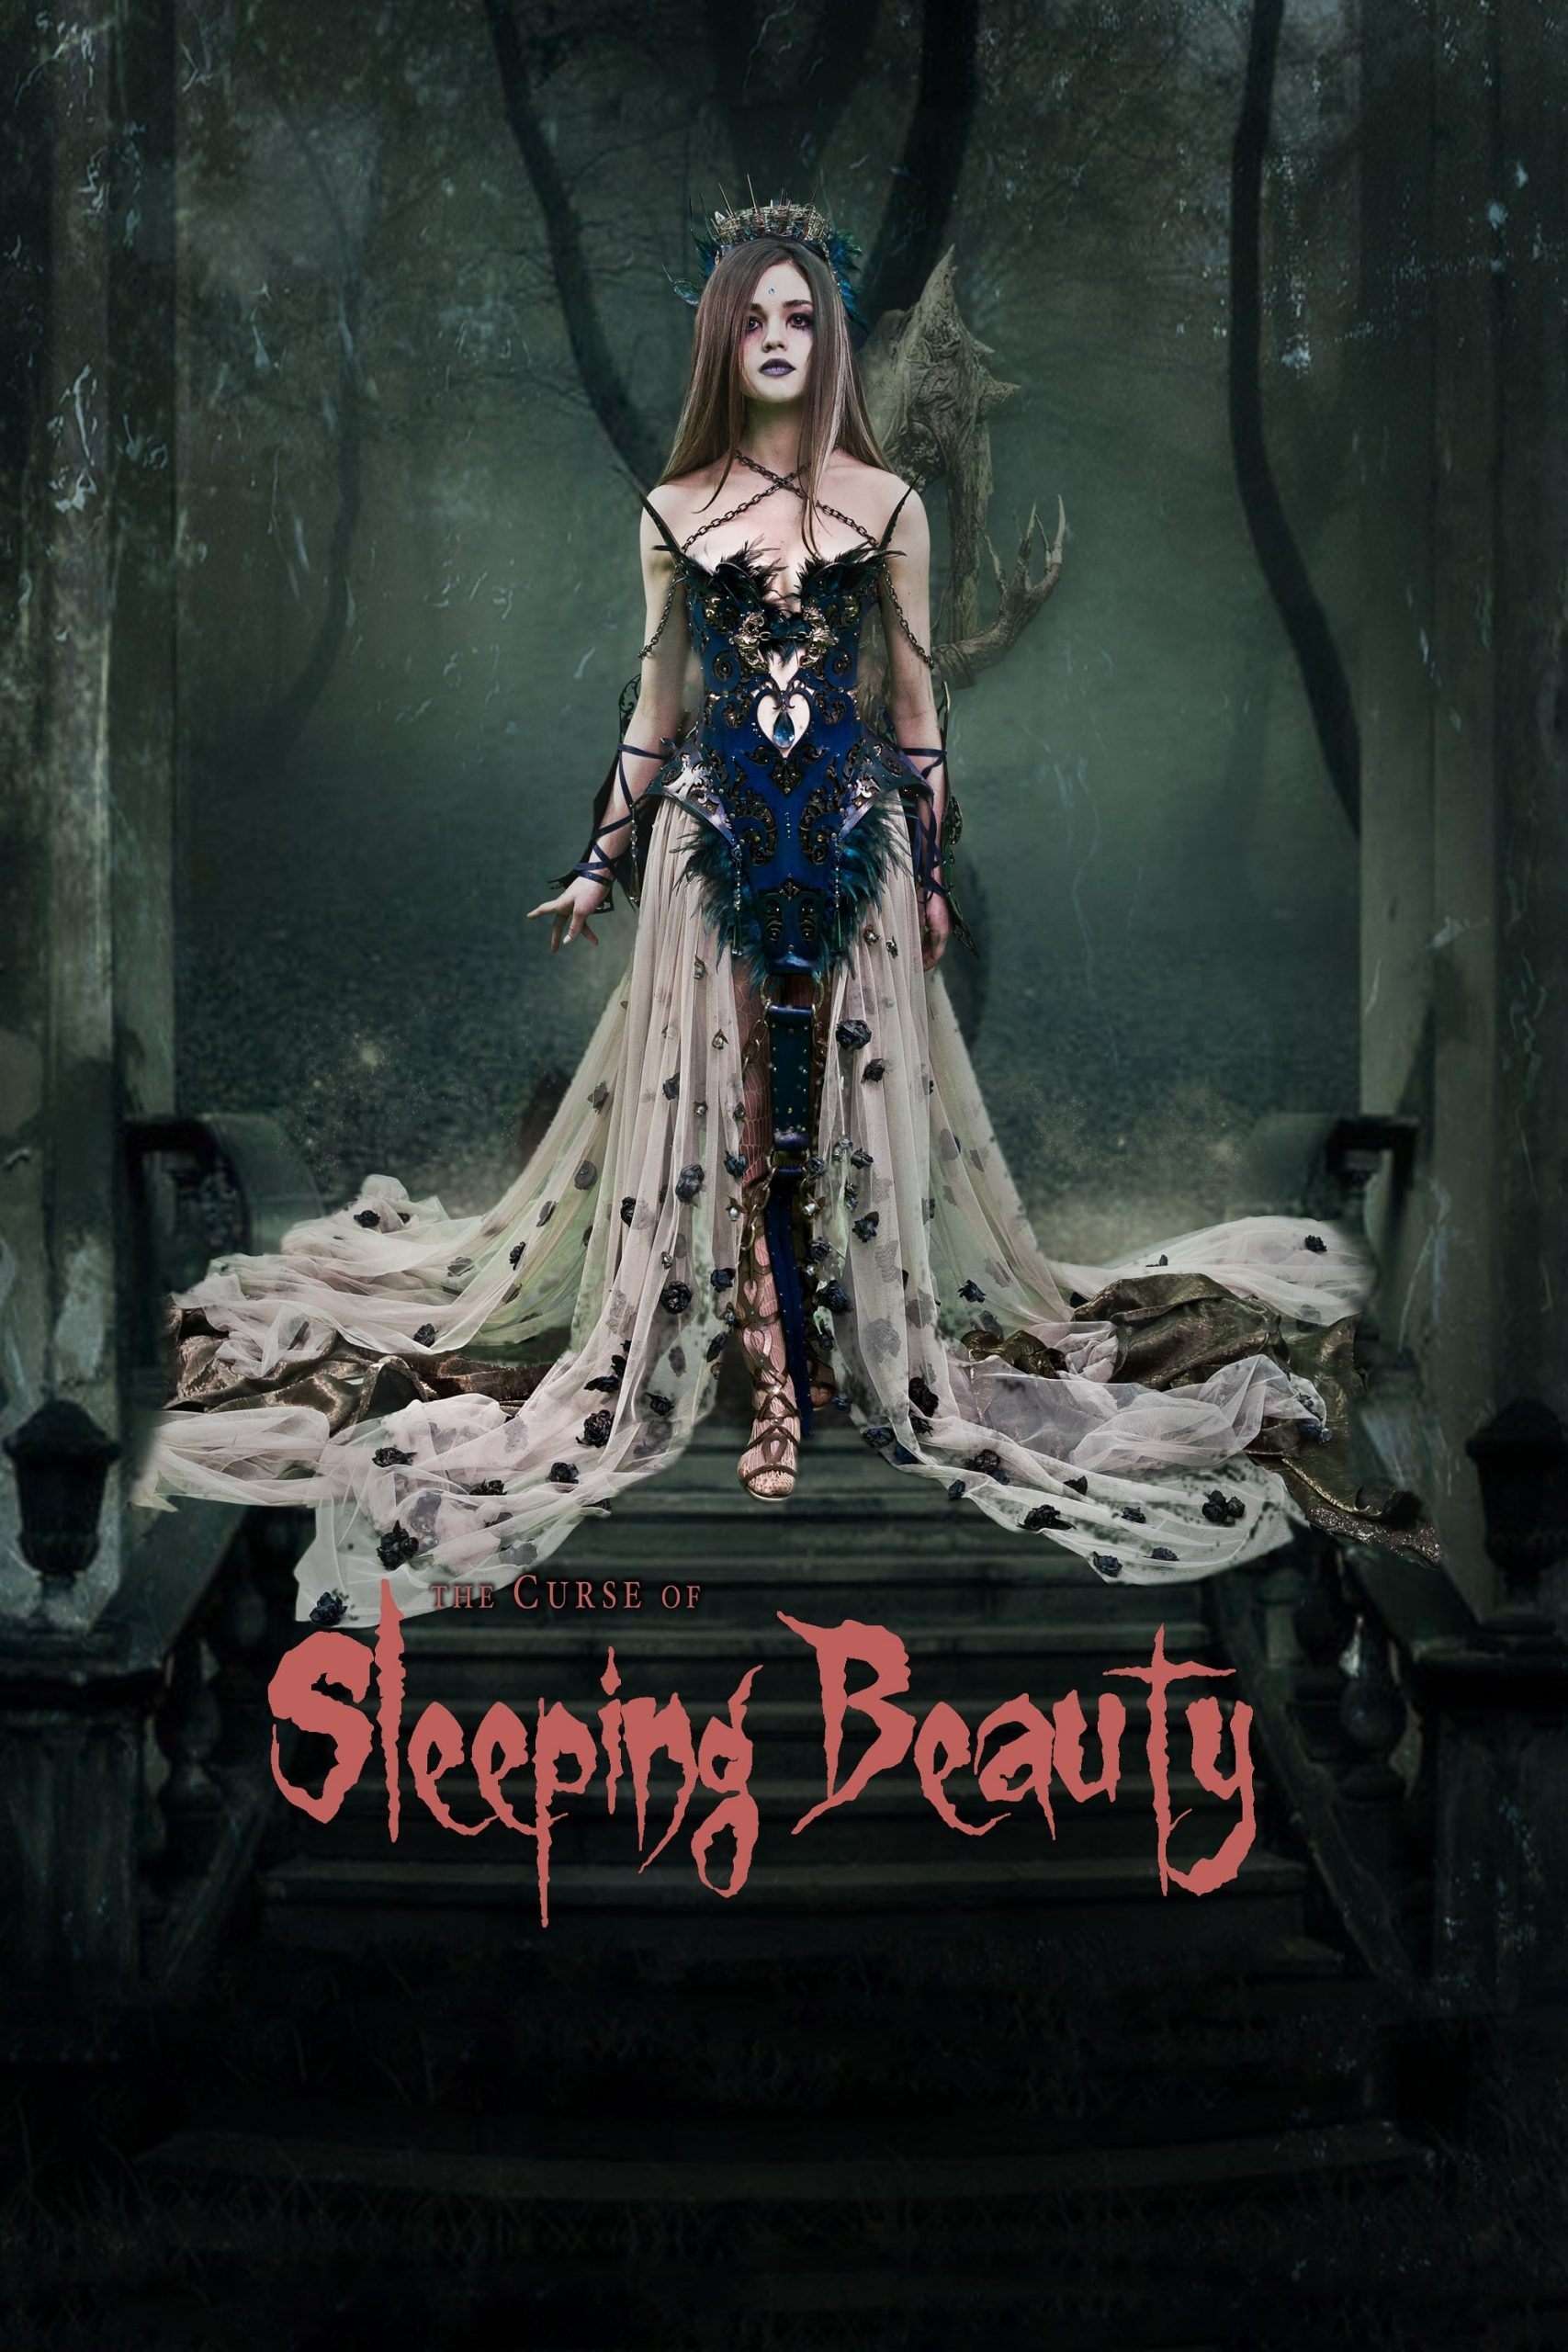 The Curse of Sleeping Beauty is a 2016 American …